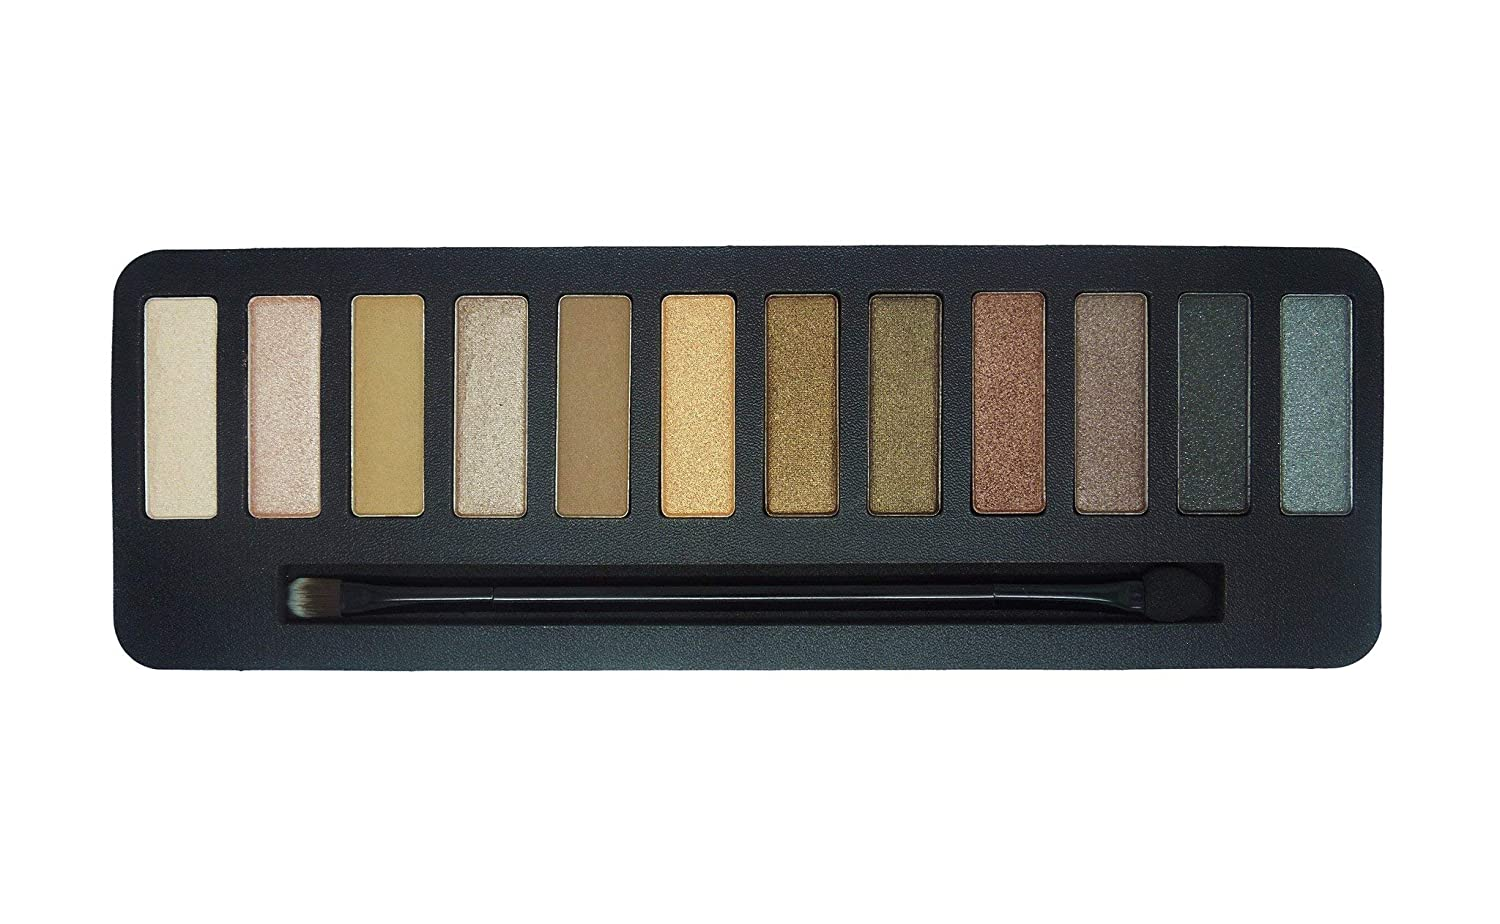 W7 | Lightly Toasted Highly Pigmented Eyeshadow Palette | 12 Long Lasting and Highly Pigmented Shades from Nudes to Coppers and Golds